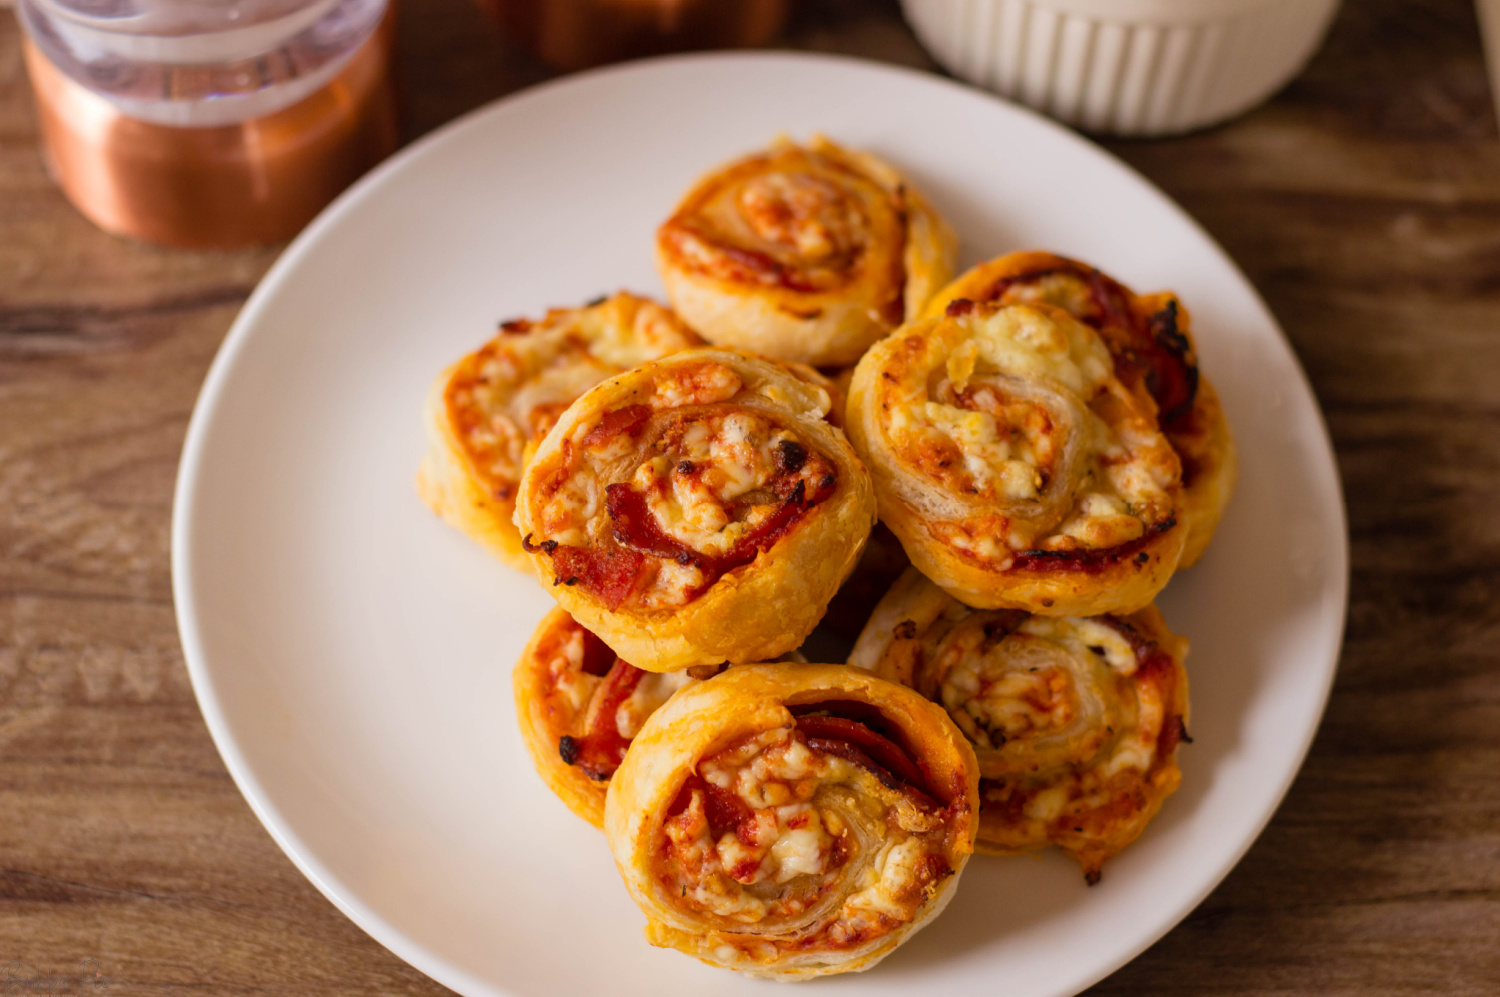 Pepperoni Pinwheels being served on a plate at a party.